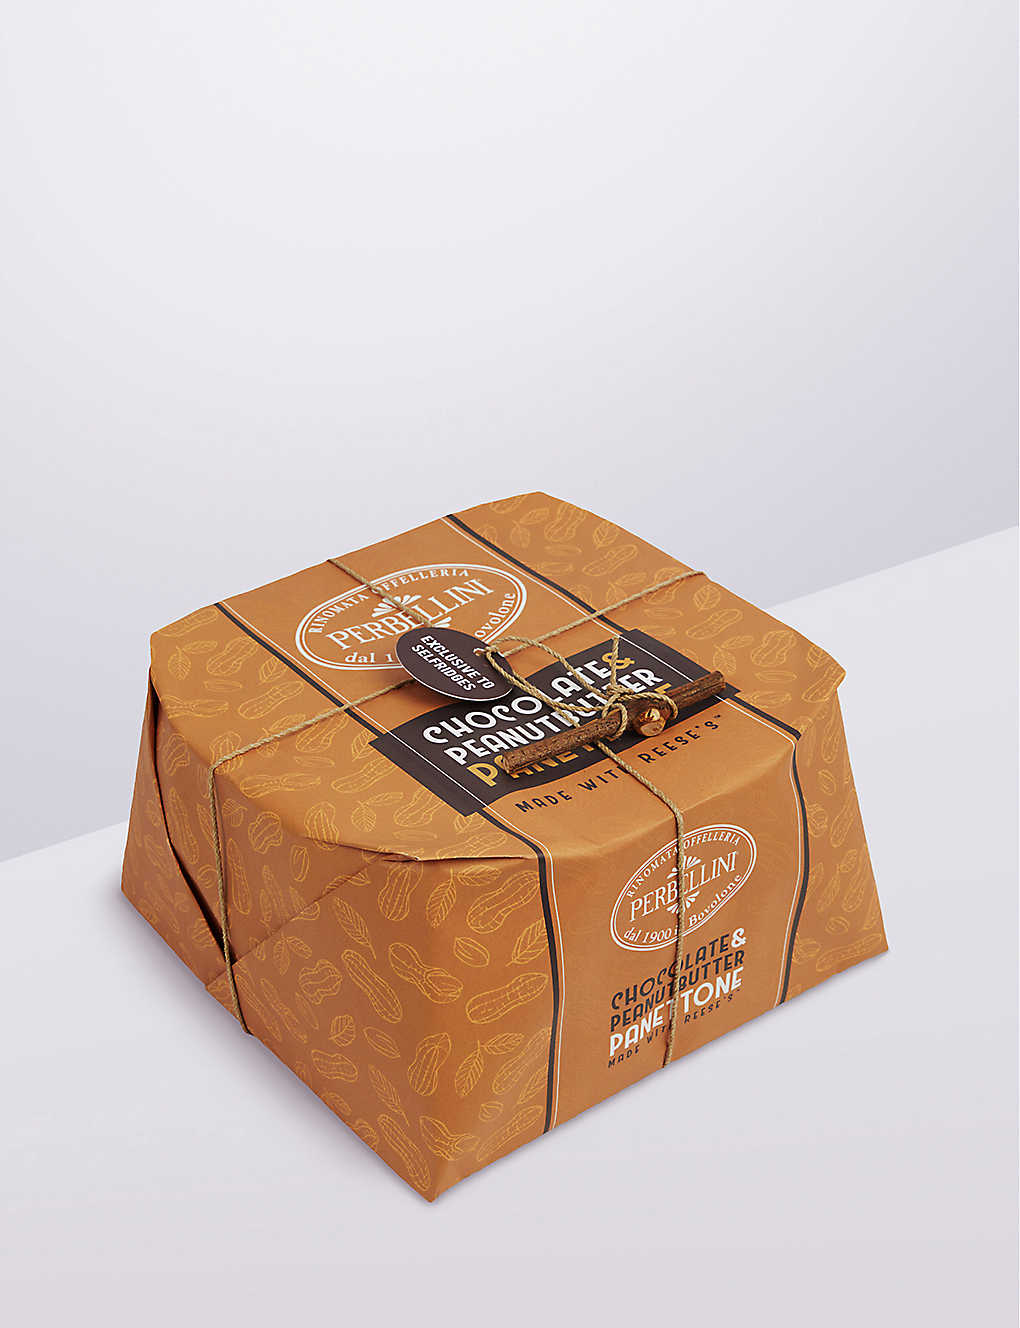 PERBELLINI: Chocolate Peanut Butter Panettone made with Reese's Exclusively for Selfridges 1kg